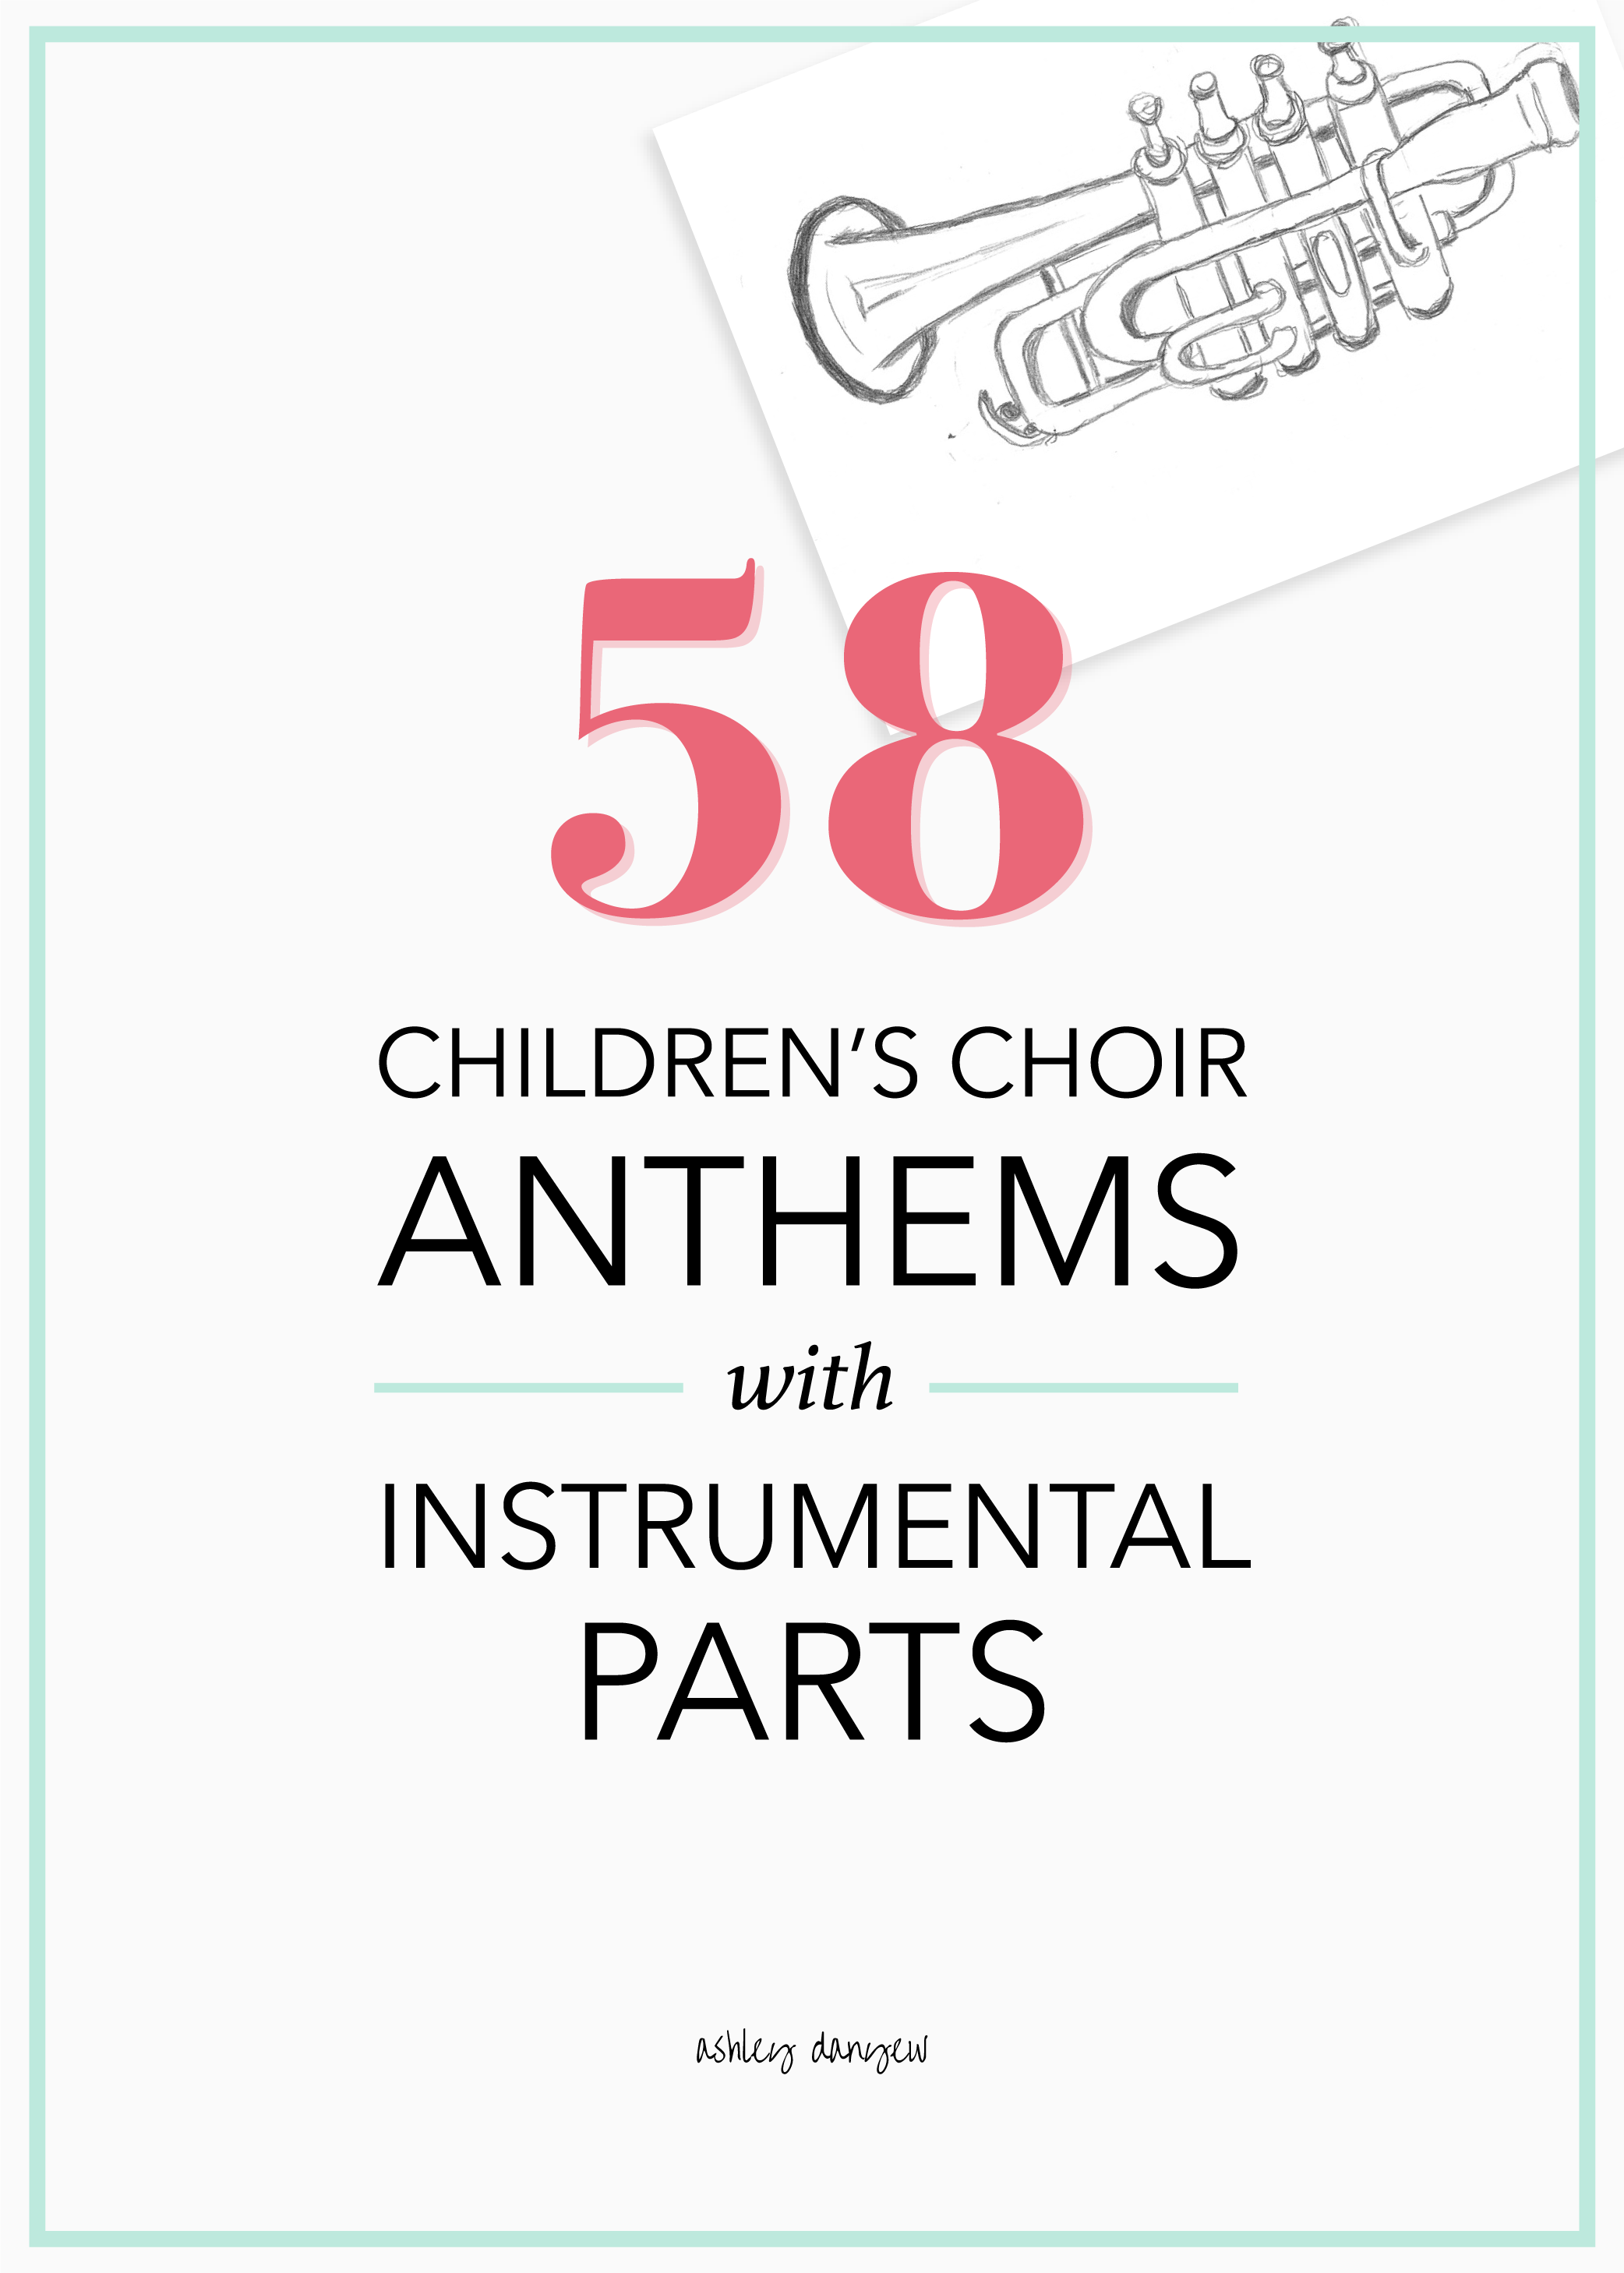 58 Children's Choir Anthems with Instrumental Parts-59.png